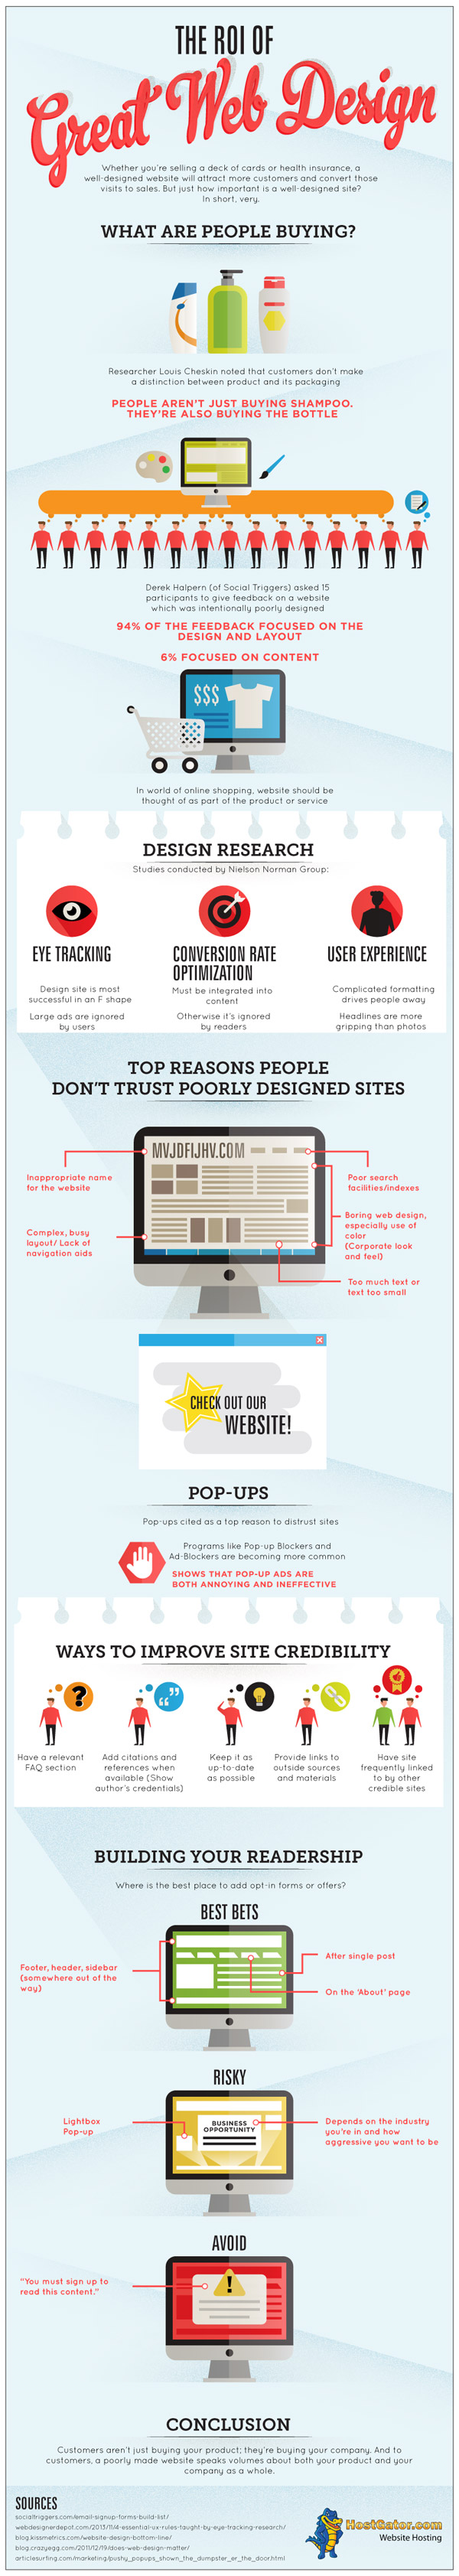 The ROI of Great Web Design by HostGator